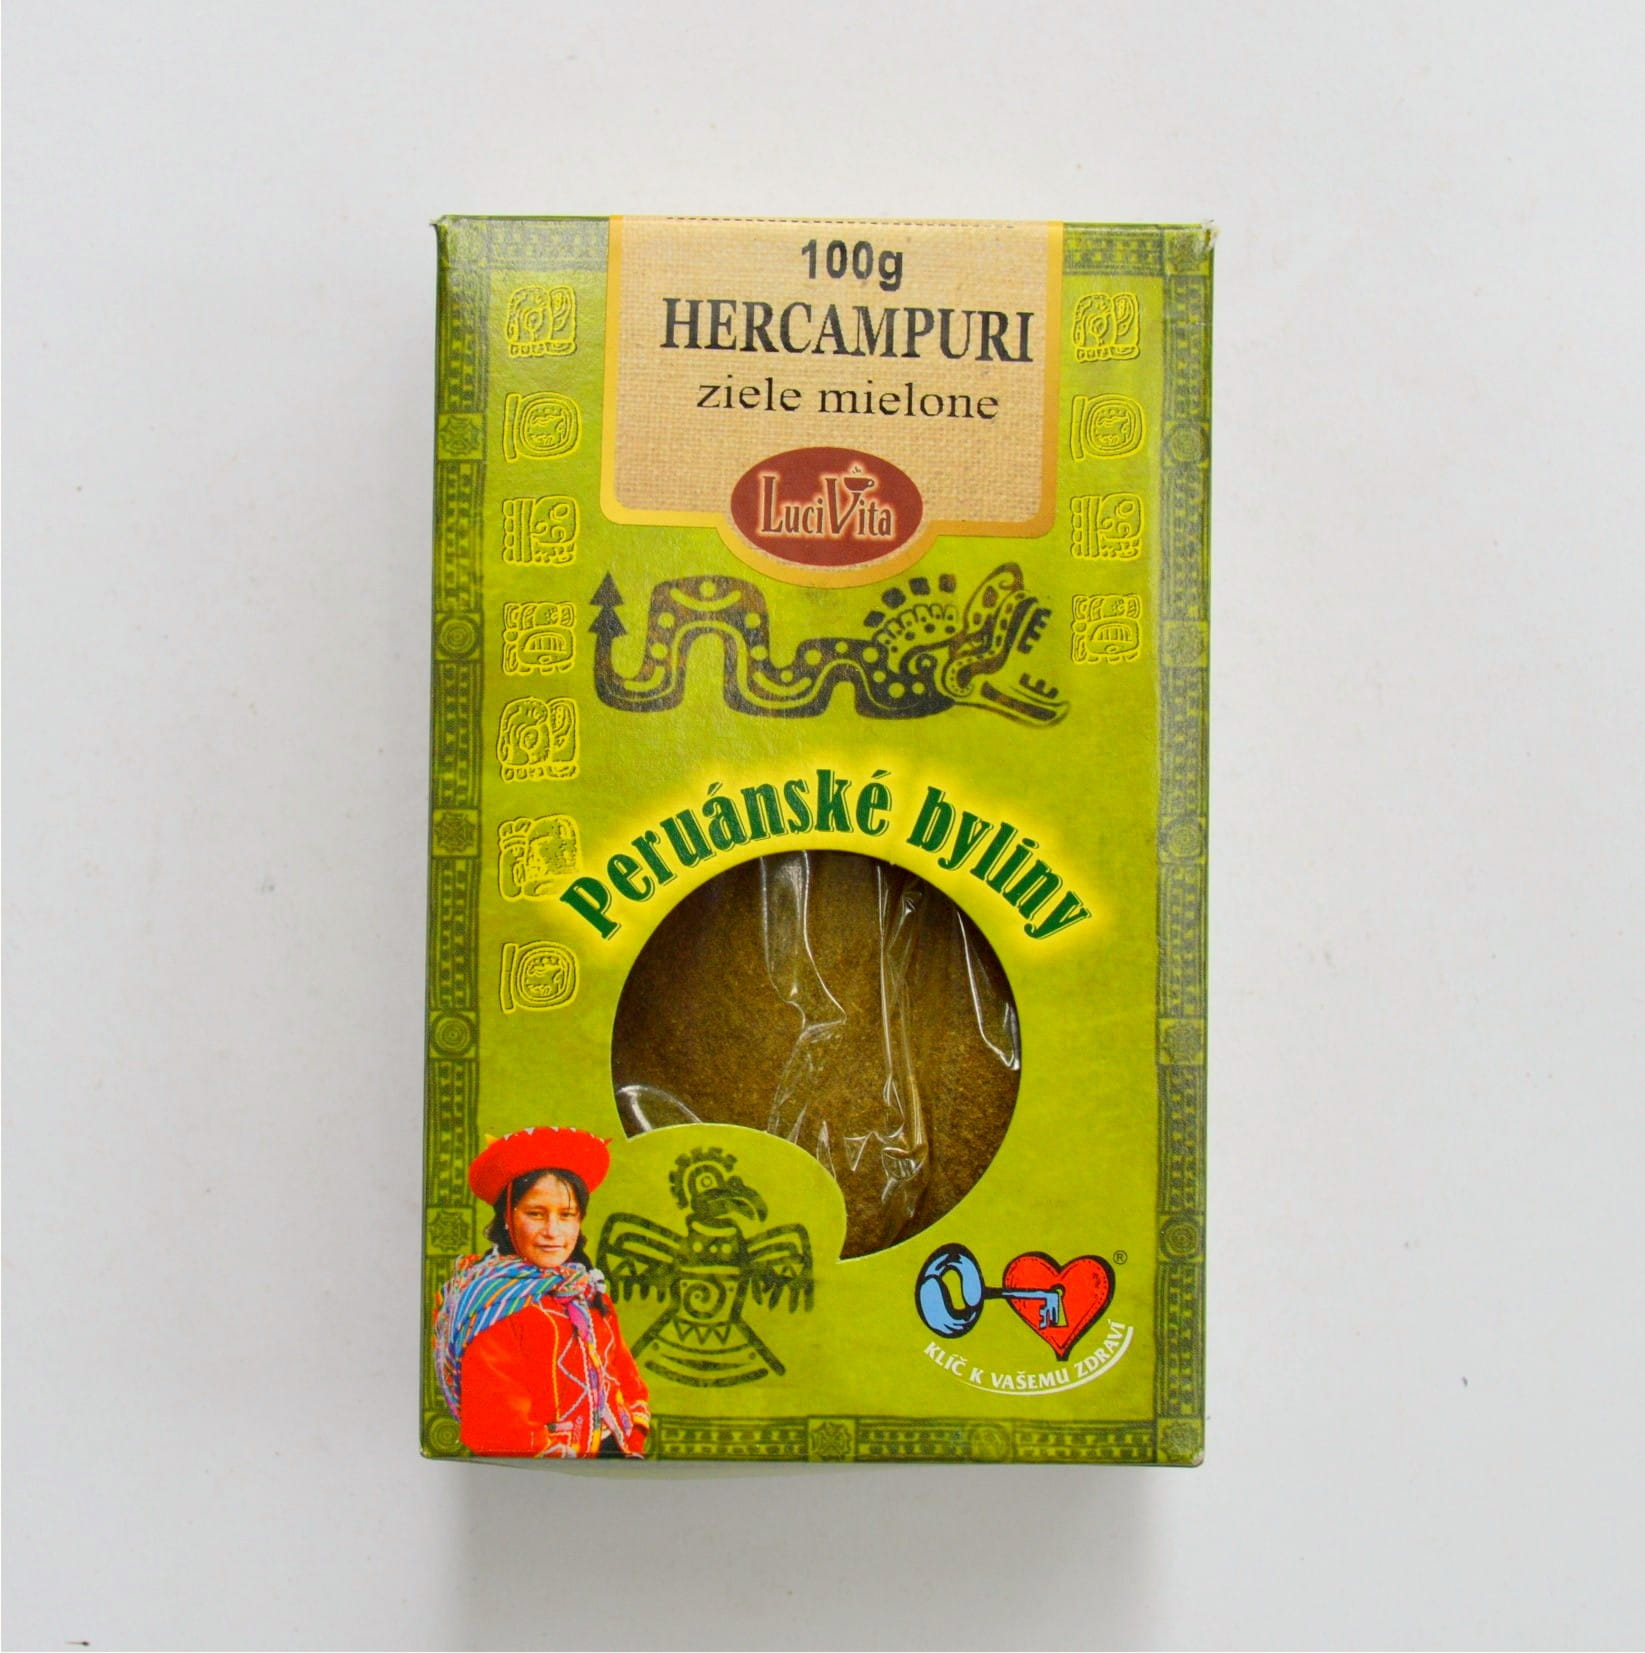 Hercampuri - powdered herb - 100g